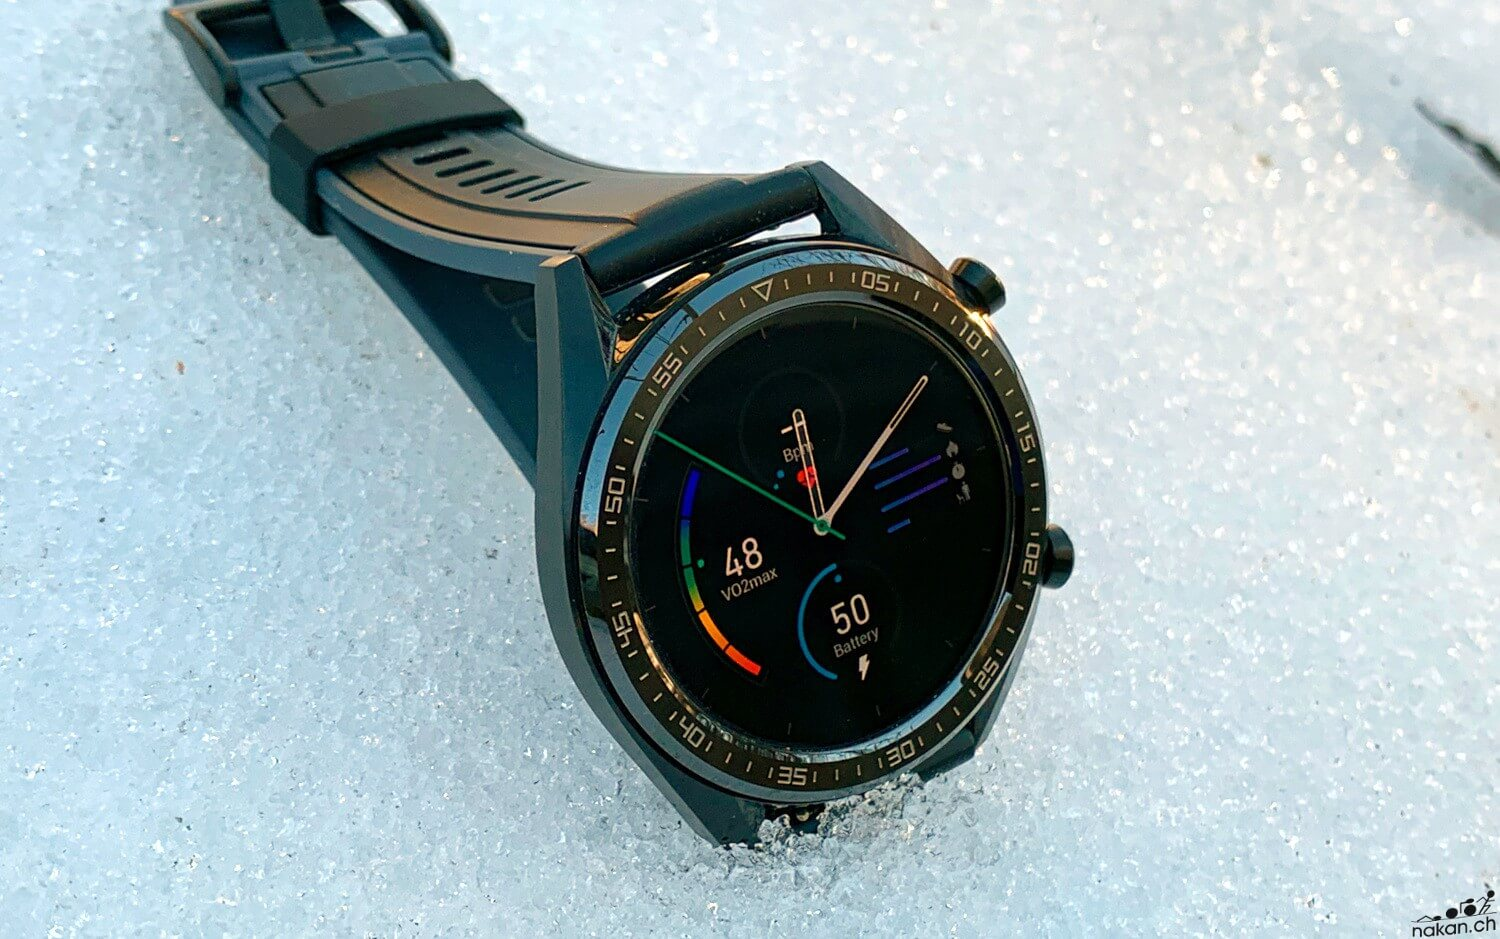 La Montre Connectee Huawei Watch Gt Testee De Fond En Comble